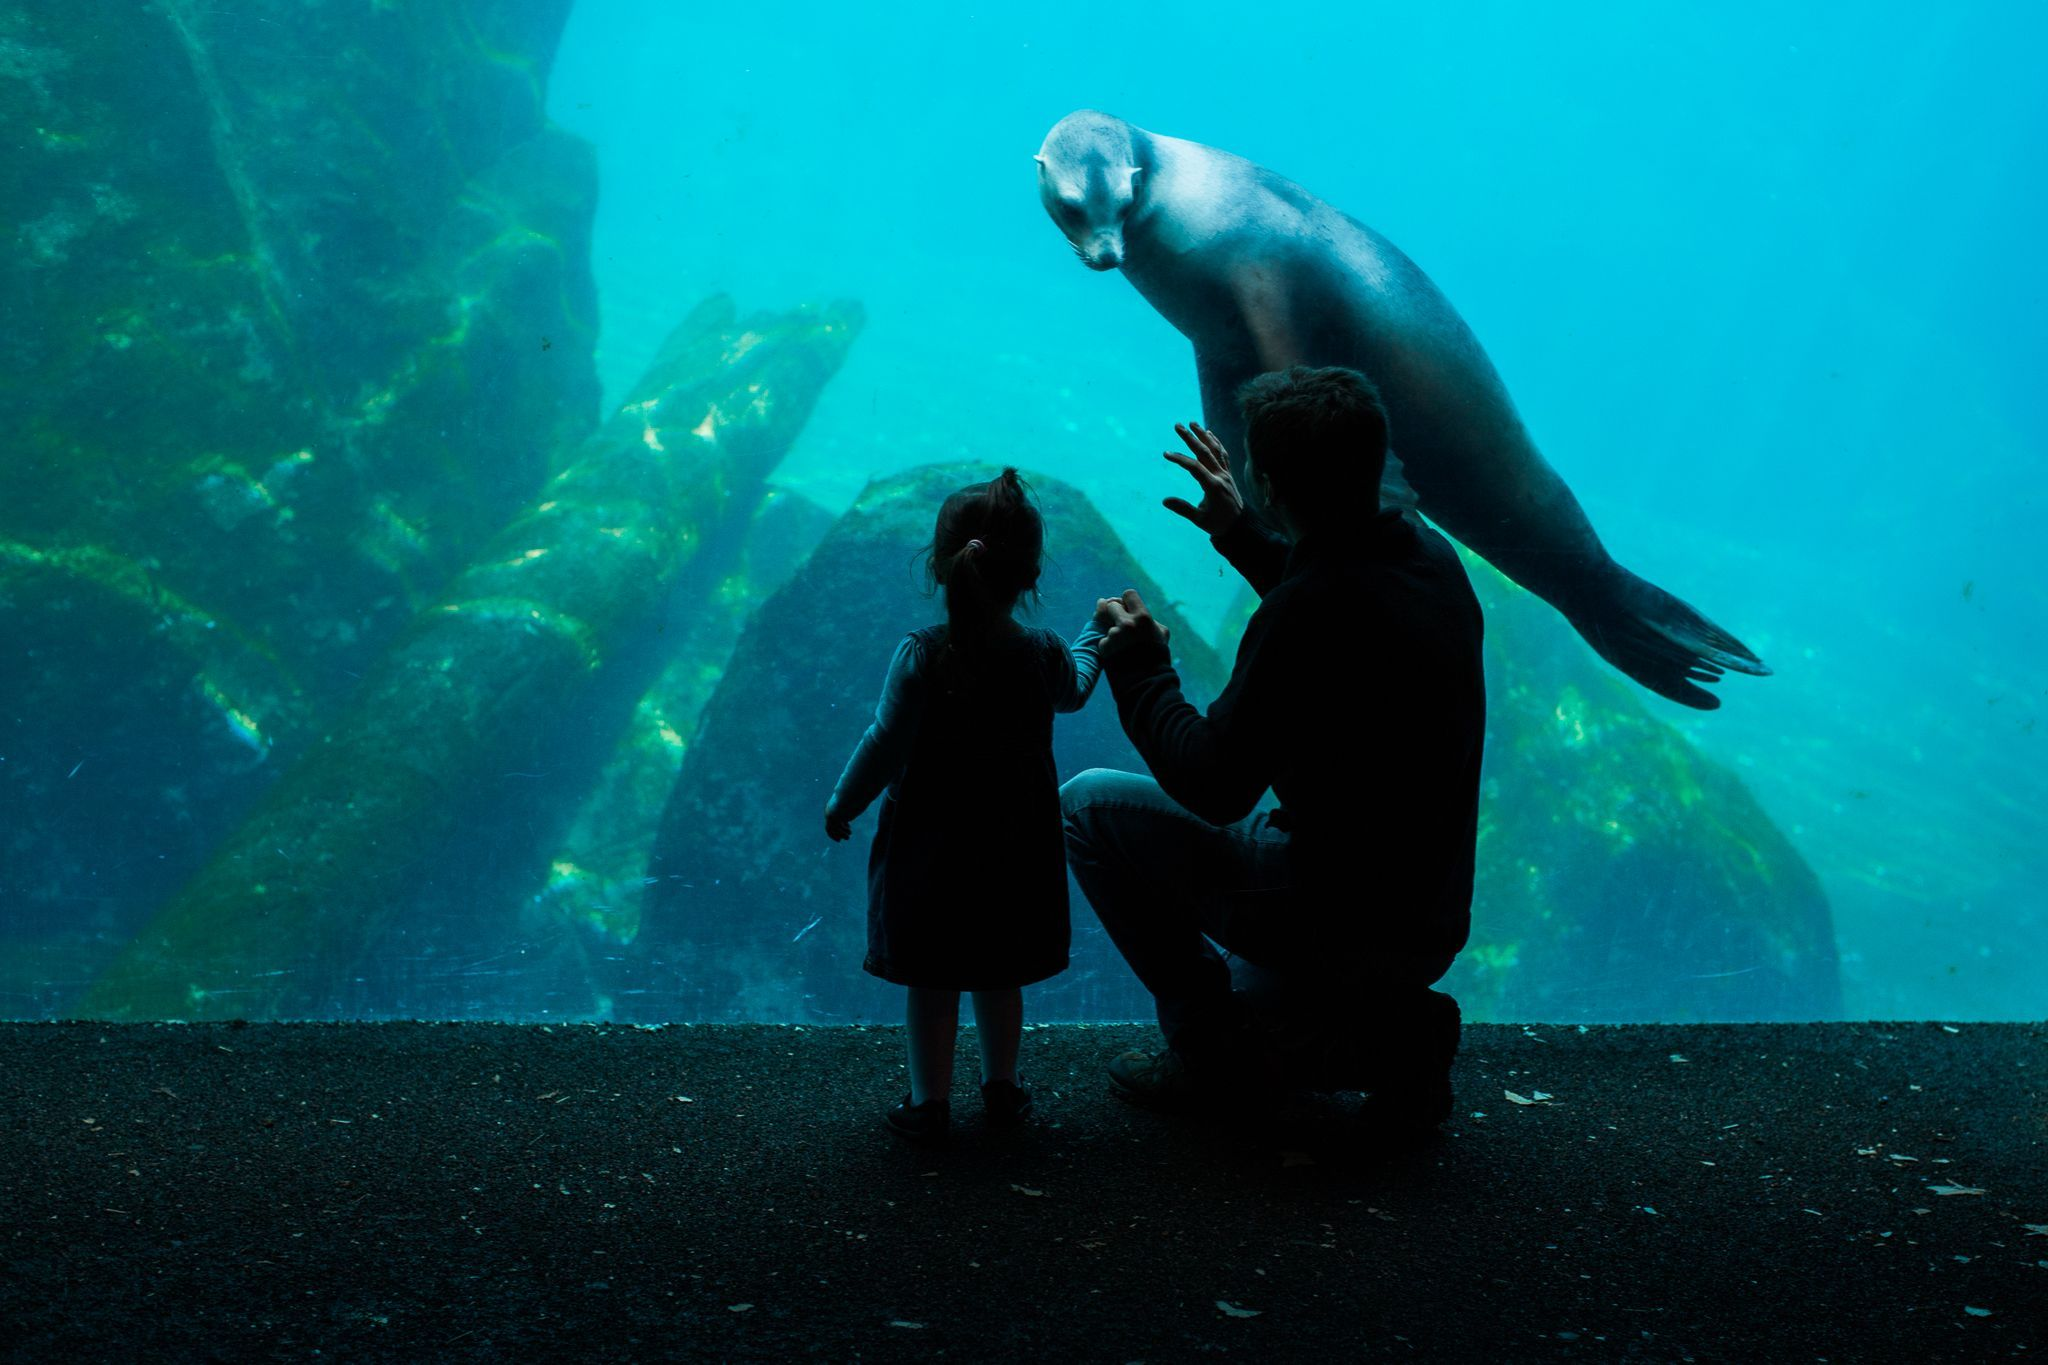 A parent and child share a moment with a sea lion at Smithsonian's National Zoo in Washington, D.C. Though they may be awkward on land, the animals can reach speeds of up to 30 miles per hour while swimming.